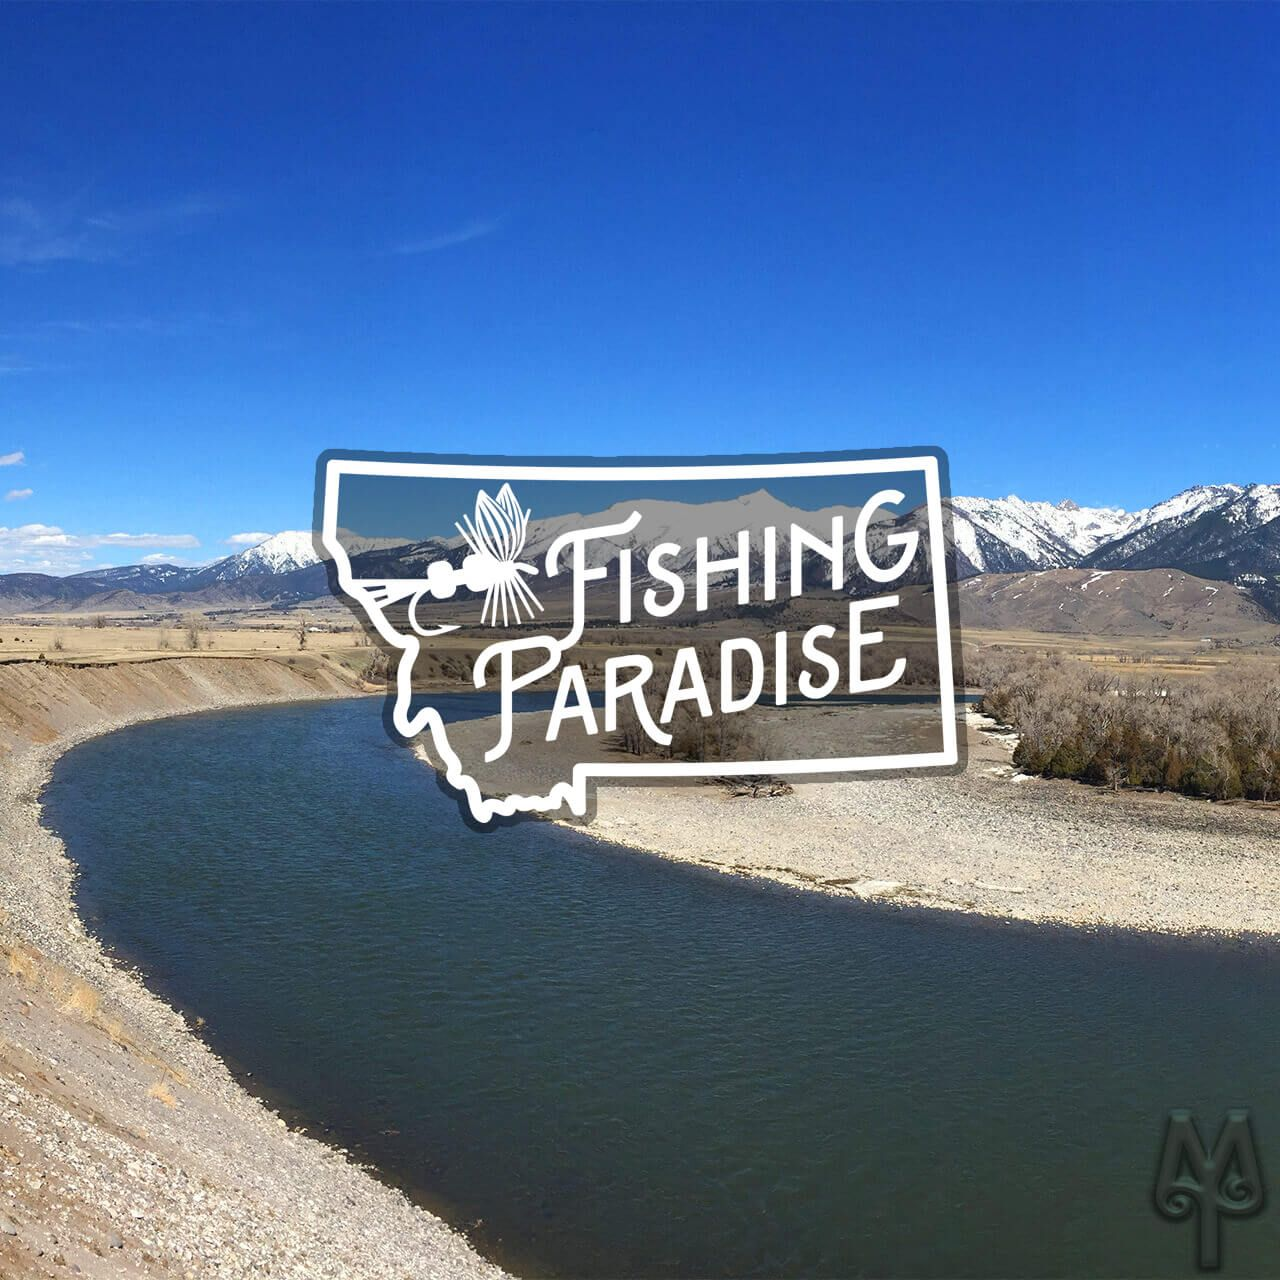 Explore The Yellowstone River As It Makes Its Grand Exit From Yellowstone National Park And Into The Paradise Valley Of The Yellowstone River Yellowstone River